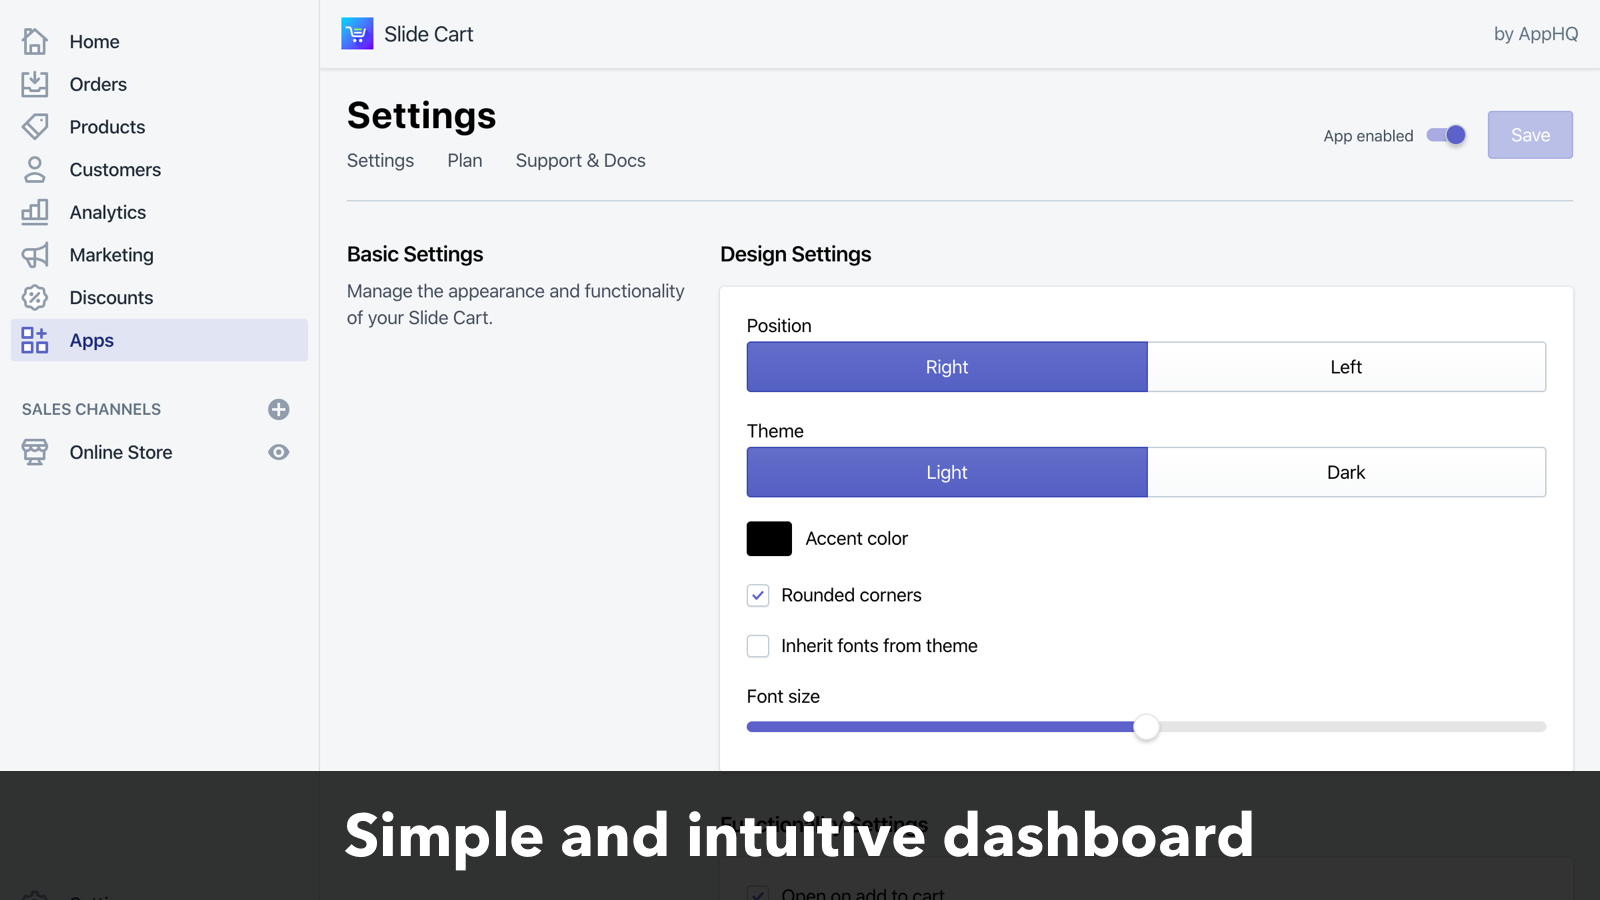 Slide Cart Drawer has a simple and intuitive dashboard